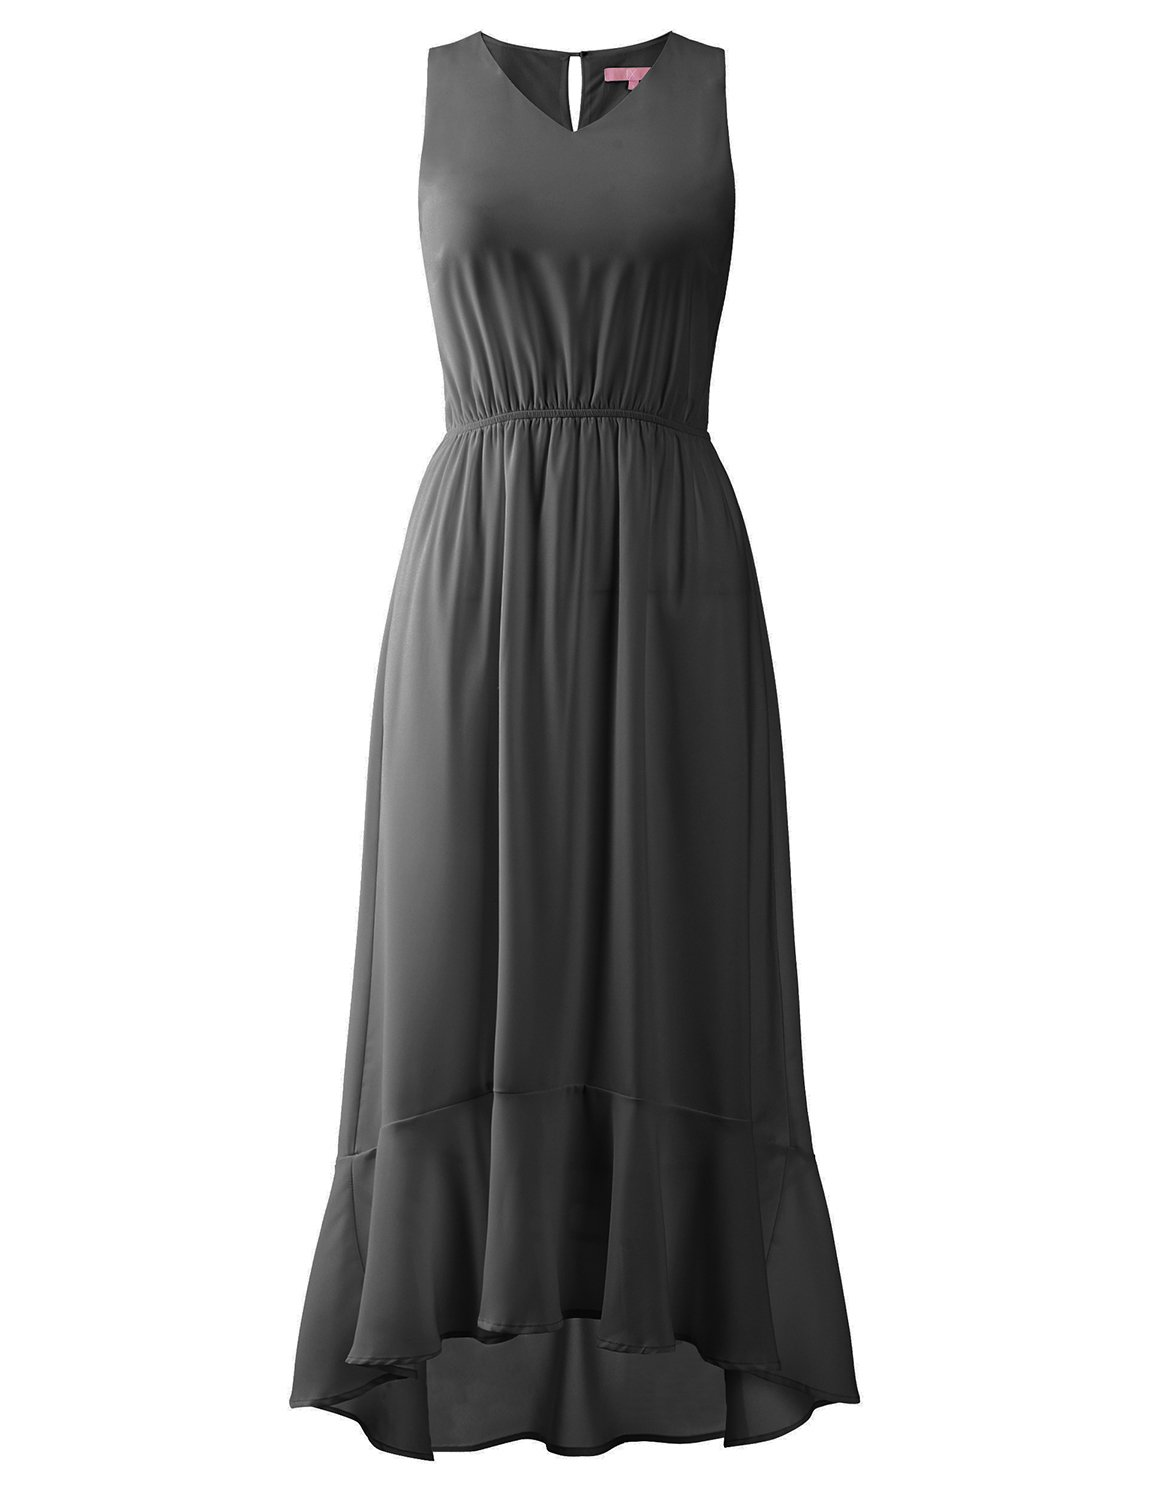 Regna X Boho for Woman Sexy fit and Flare Cocktail Black Extra Large Flared Ruffle Hemline Maxi Chiffon Dresses